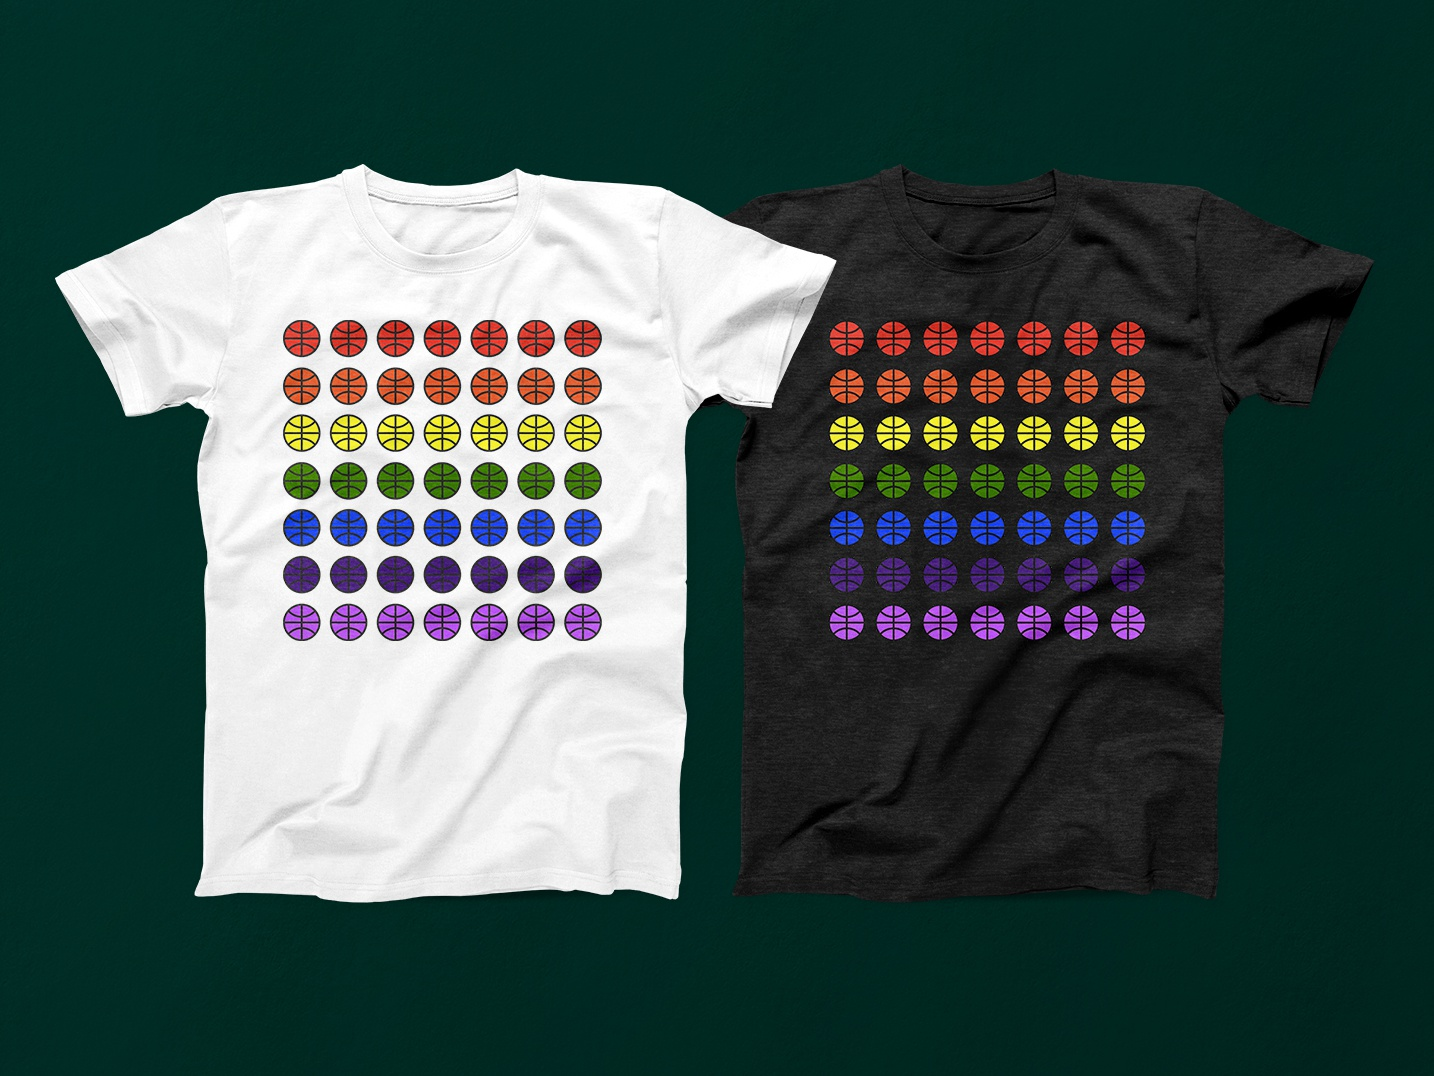 Queer Love & Basketball Shirts shirt mockup shirt design shirt shirts rainbow queer basketball iconography illustration